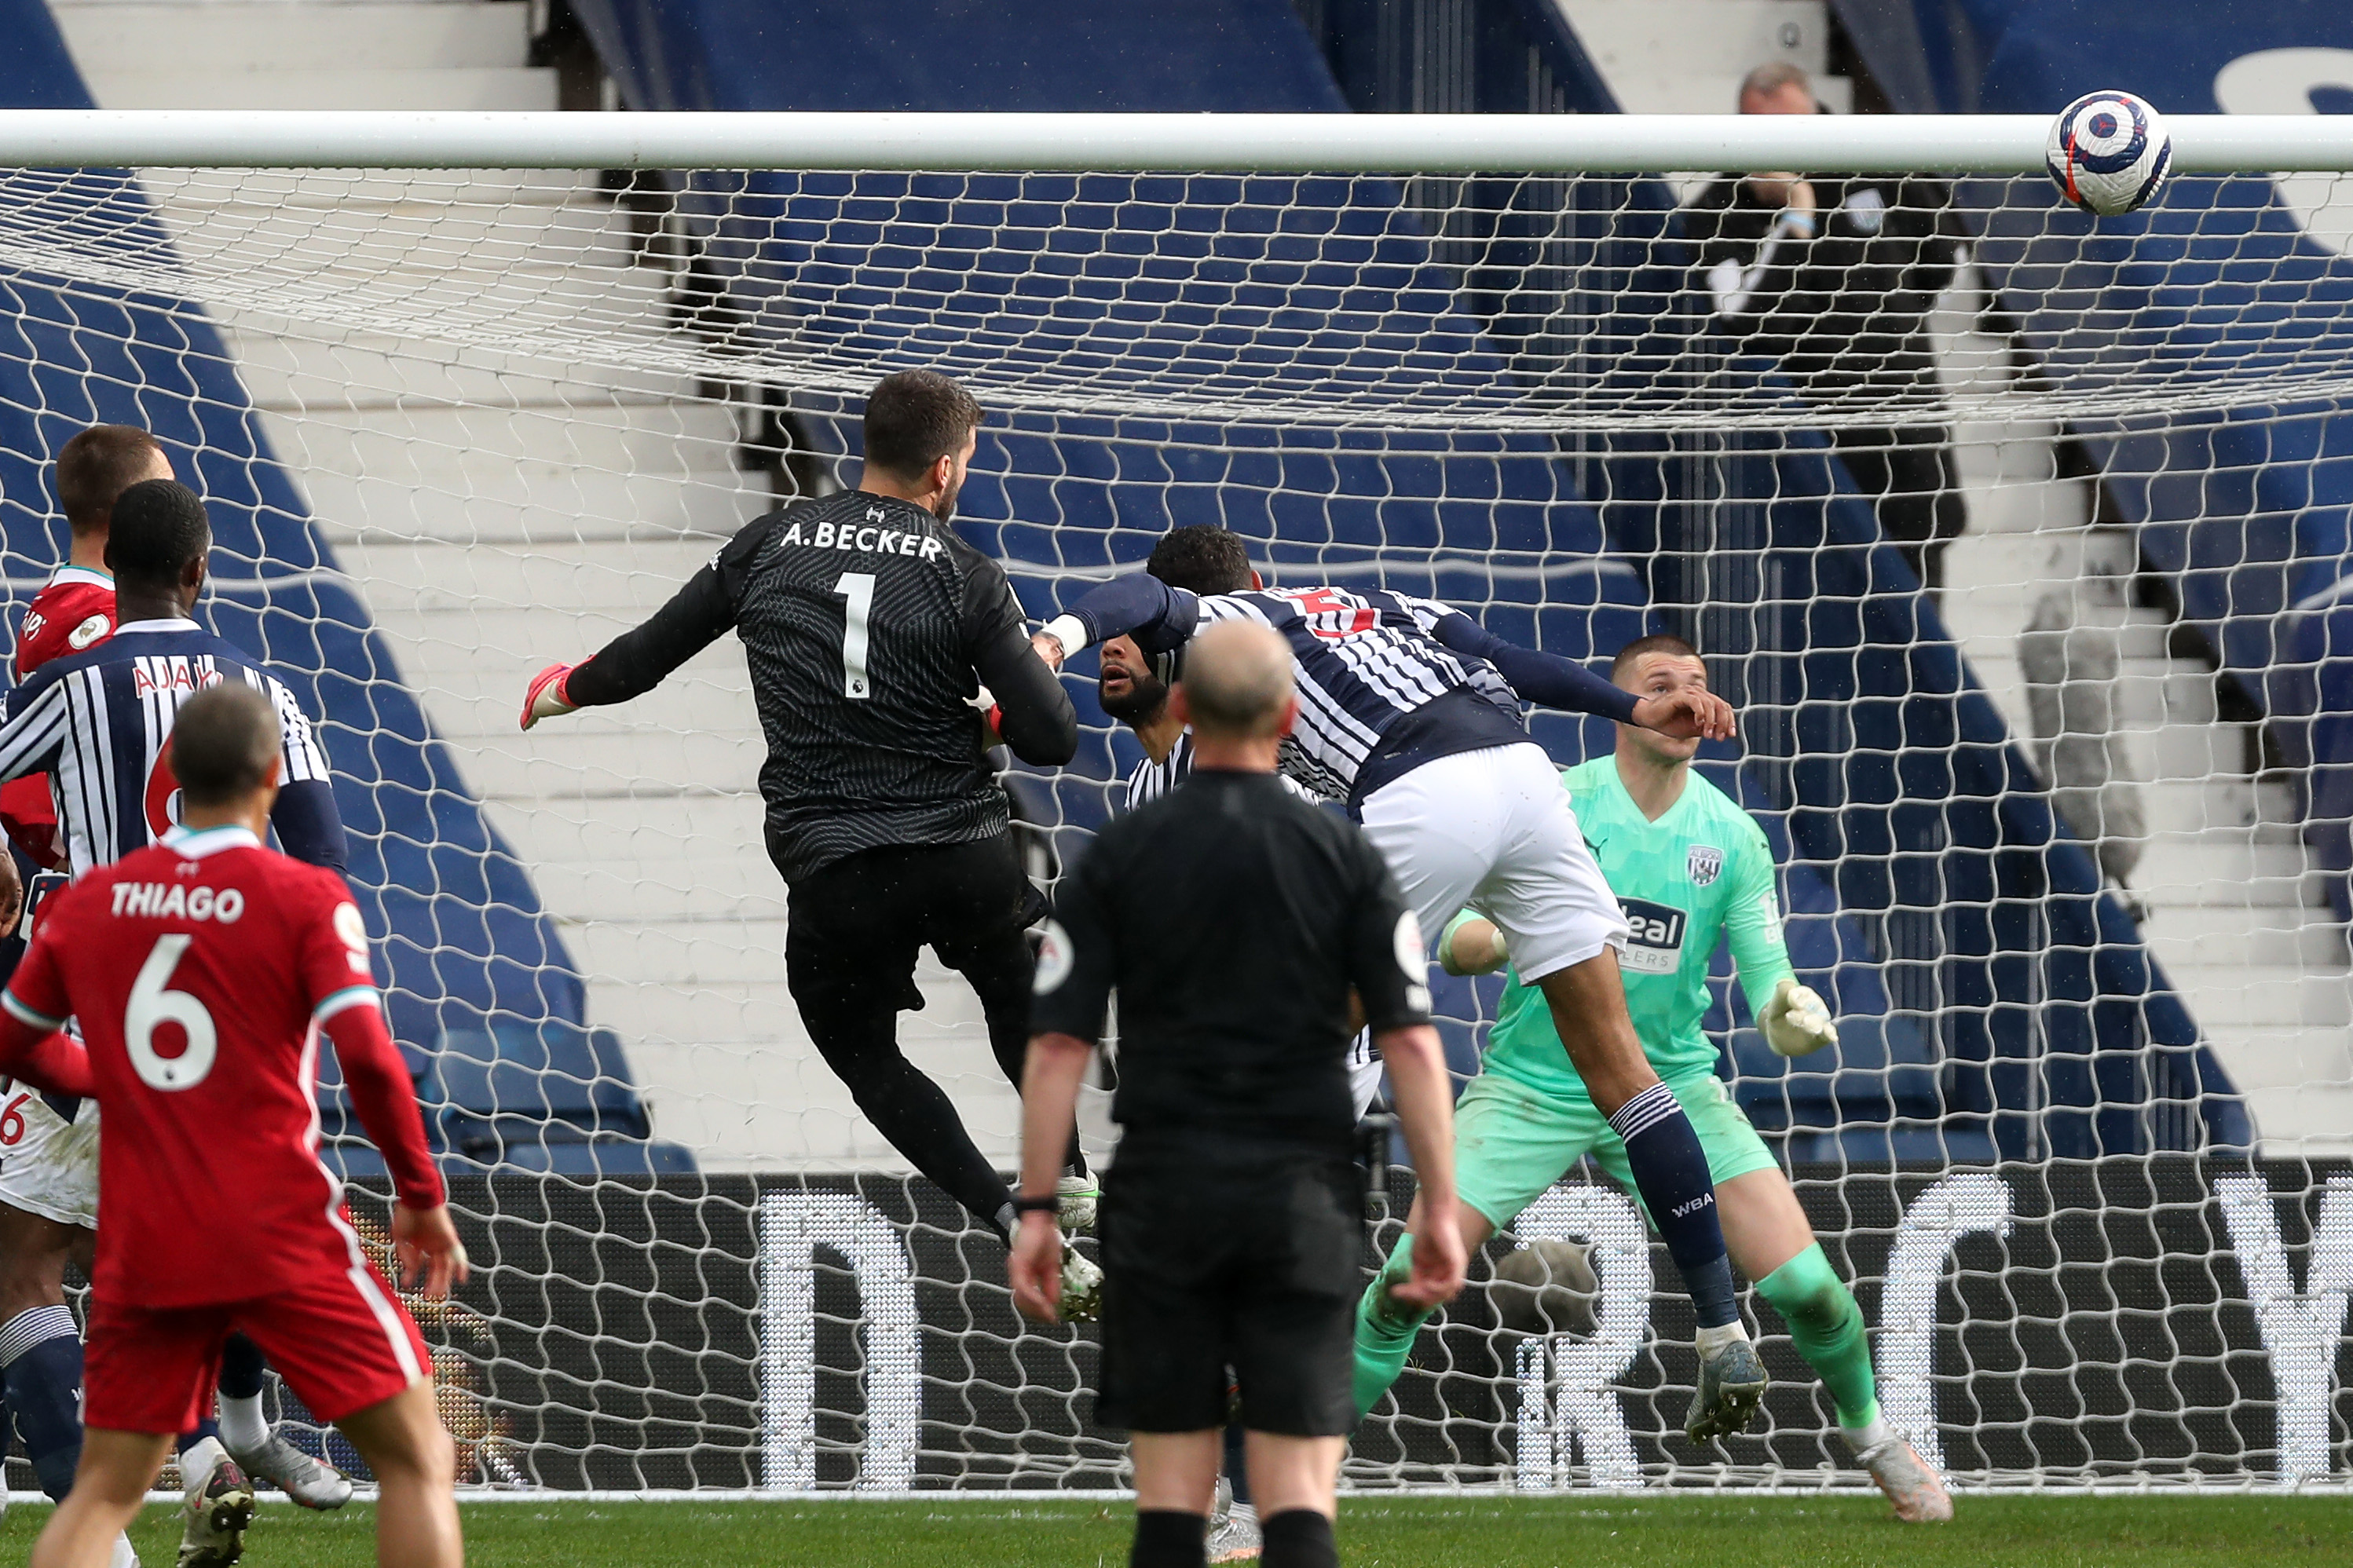 <p>WEST BROMWICH, ENGLAND - MAY 16: Goalkeeper Alisson Becker of Liverpool scores a goal to make it 1-2 during the Premier League match between West Bromwich Albion and Liverpool at The Hawthorns on May 16, 2021 in West Bromwich, United Kingdom. (Photo by Adam Fradgley - AMA/West Bromwich Albion FC via Getty Images)</p>